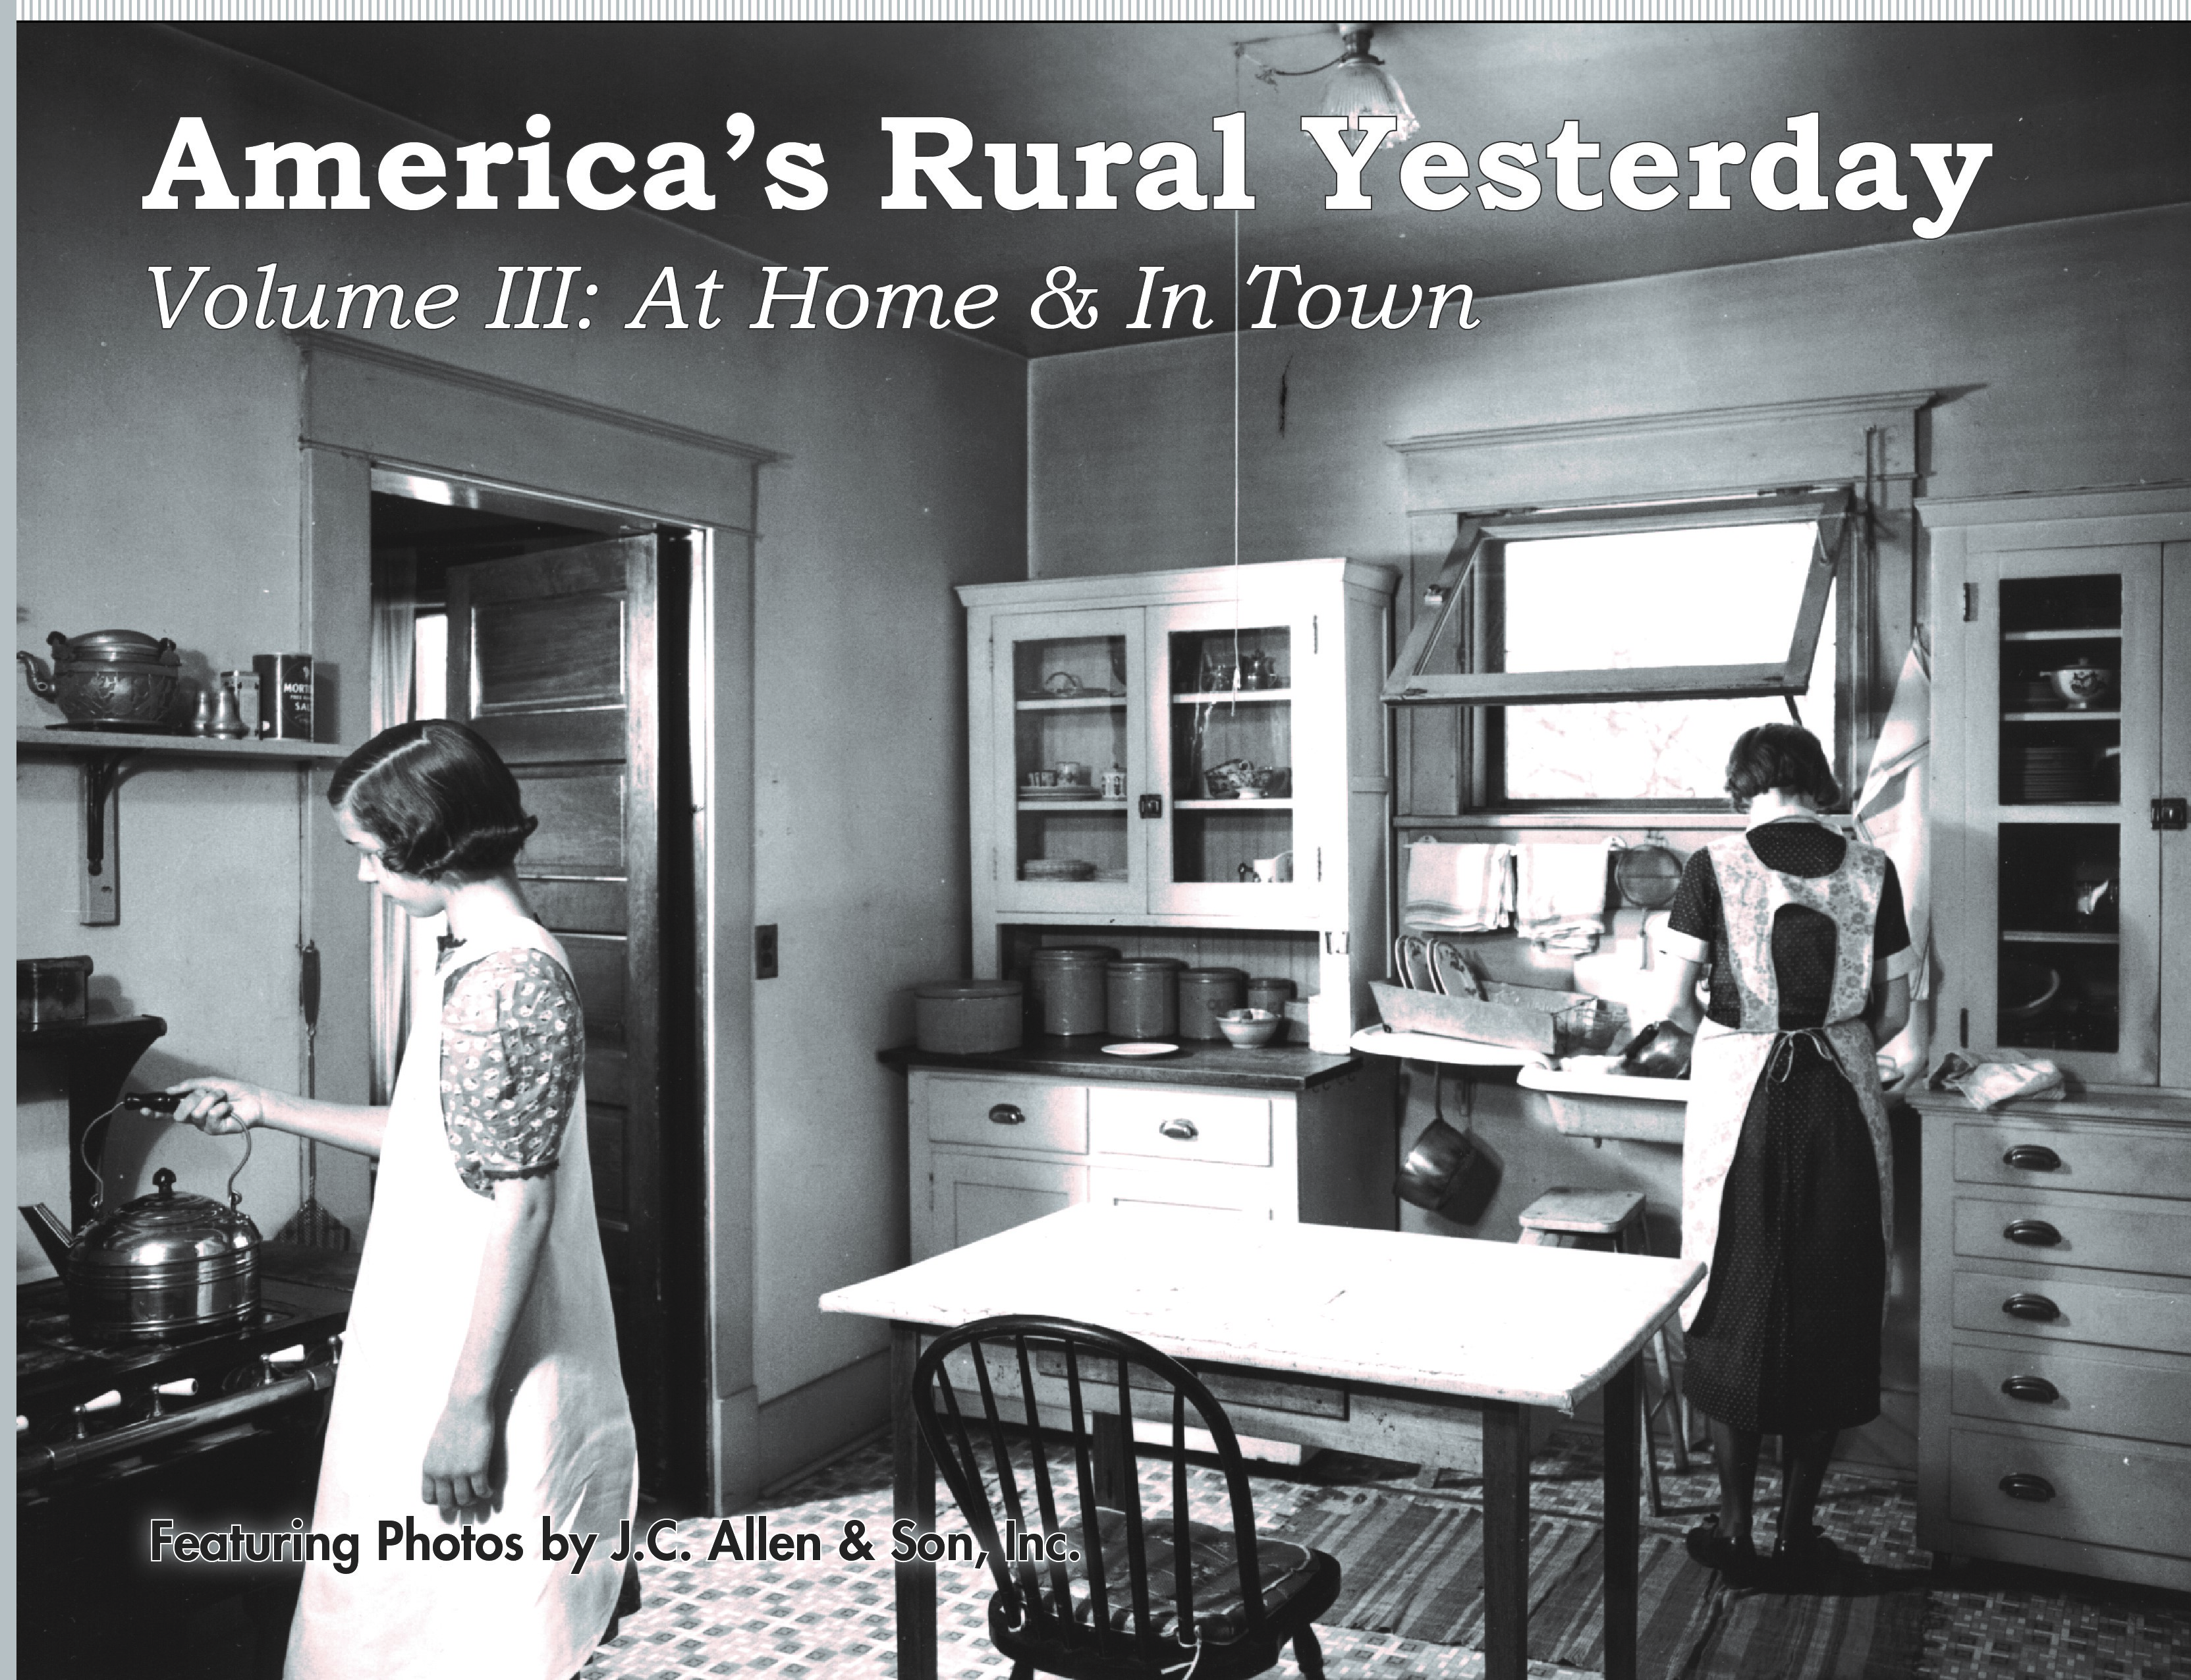 America's Rural Yesterday - Volume III:At Home & In Town